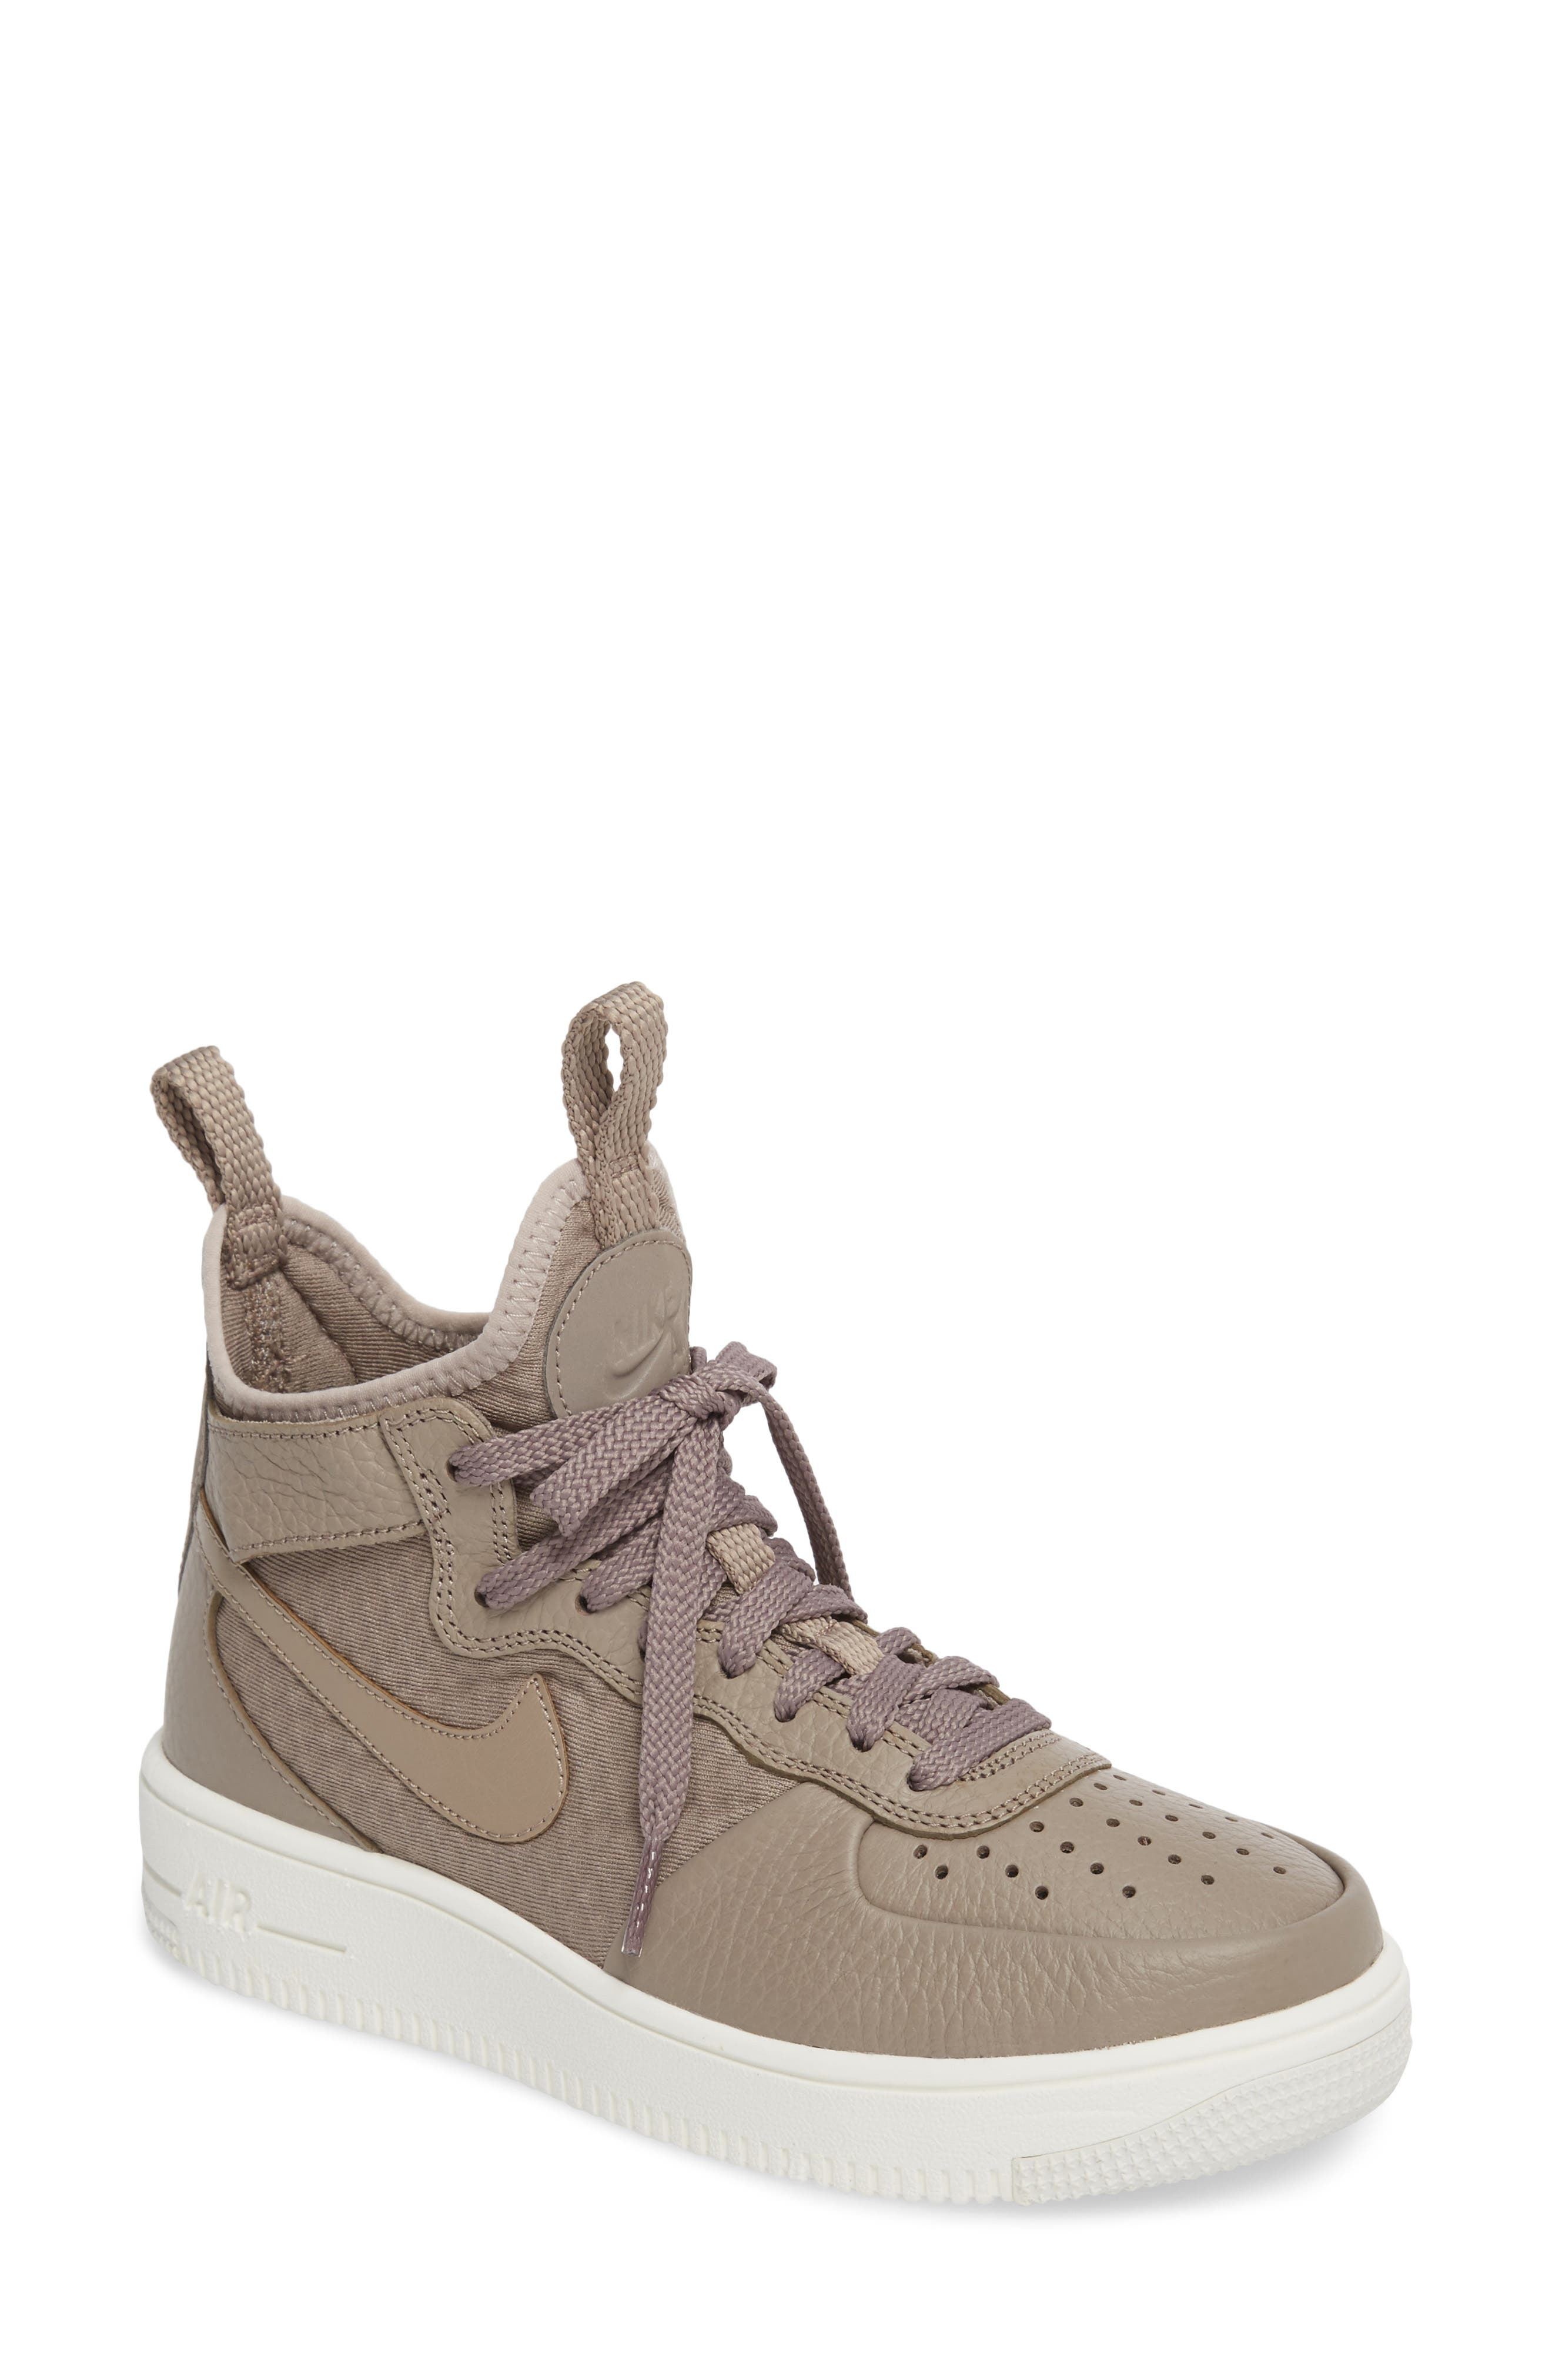 Air Force 1 Ultraforce Mid Sneaker,                         Main,                         color, 022